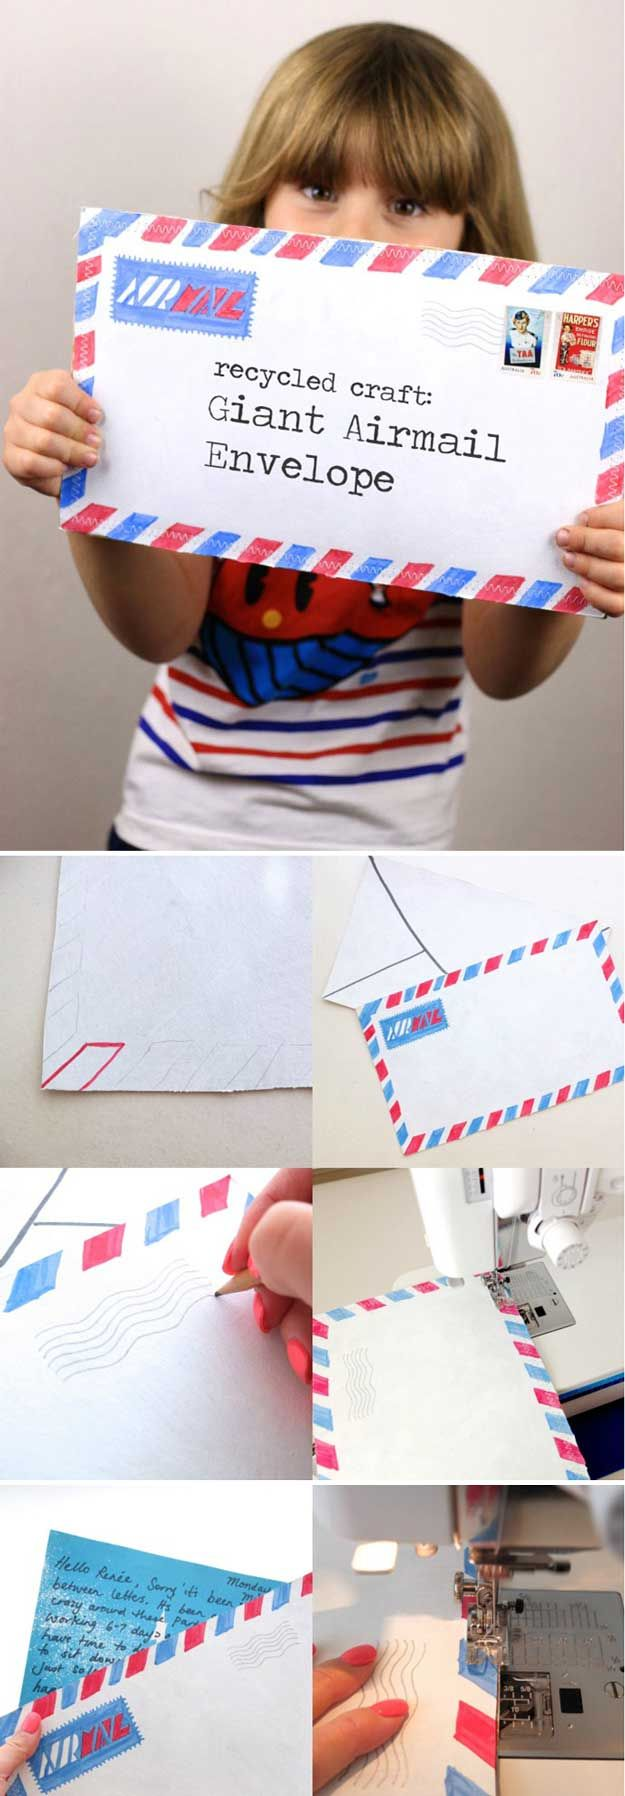 Ready rats diy mini scrapbook my crafts and diy projects - Cereal Box Crafts